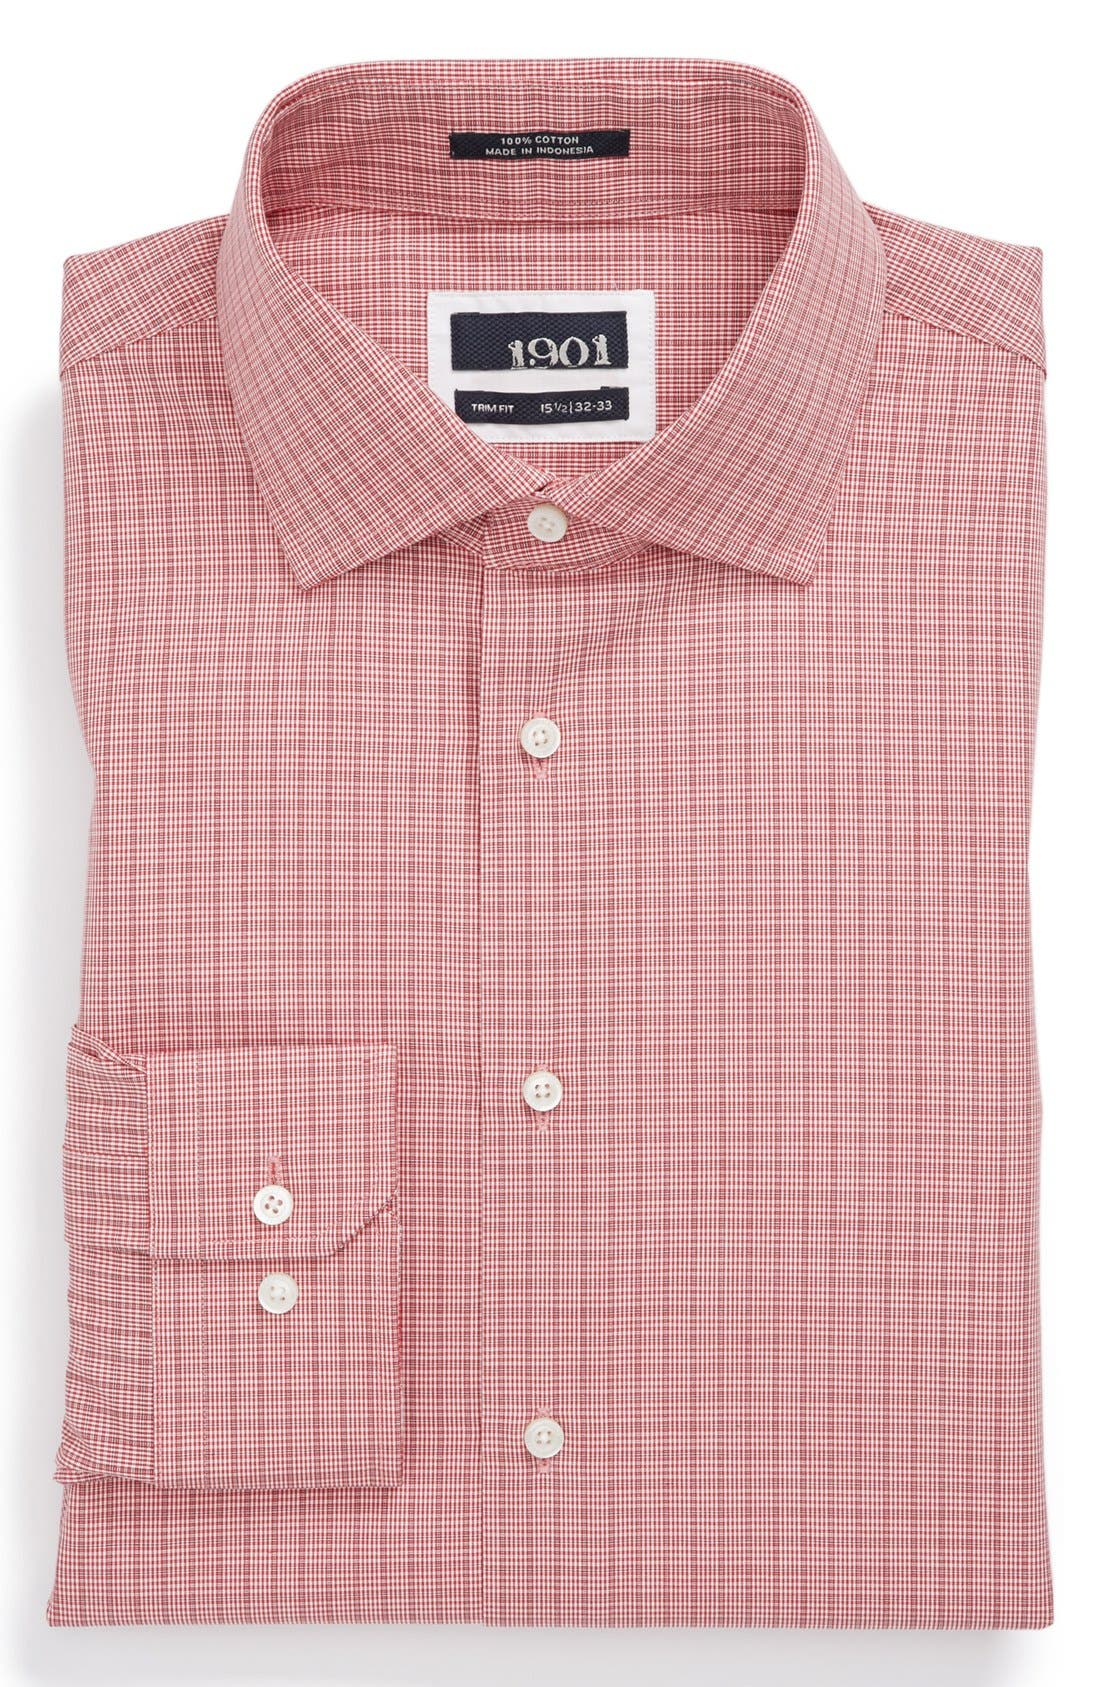 Alternate Image 1 Selected - 1901 Trim Fit Plaid Dress Shirt